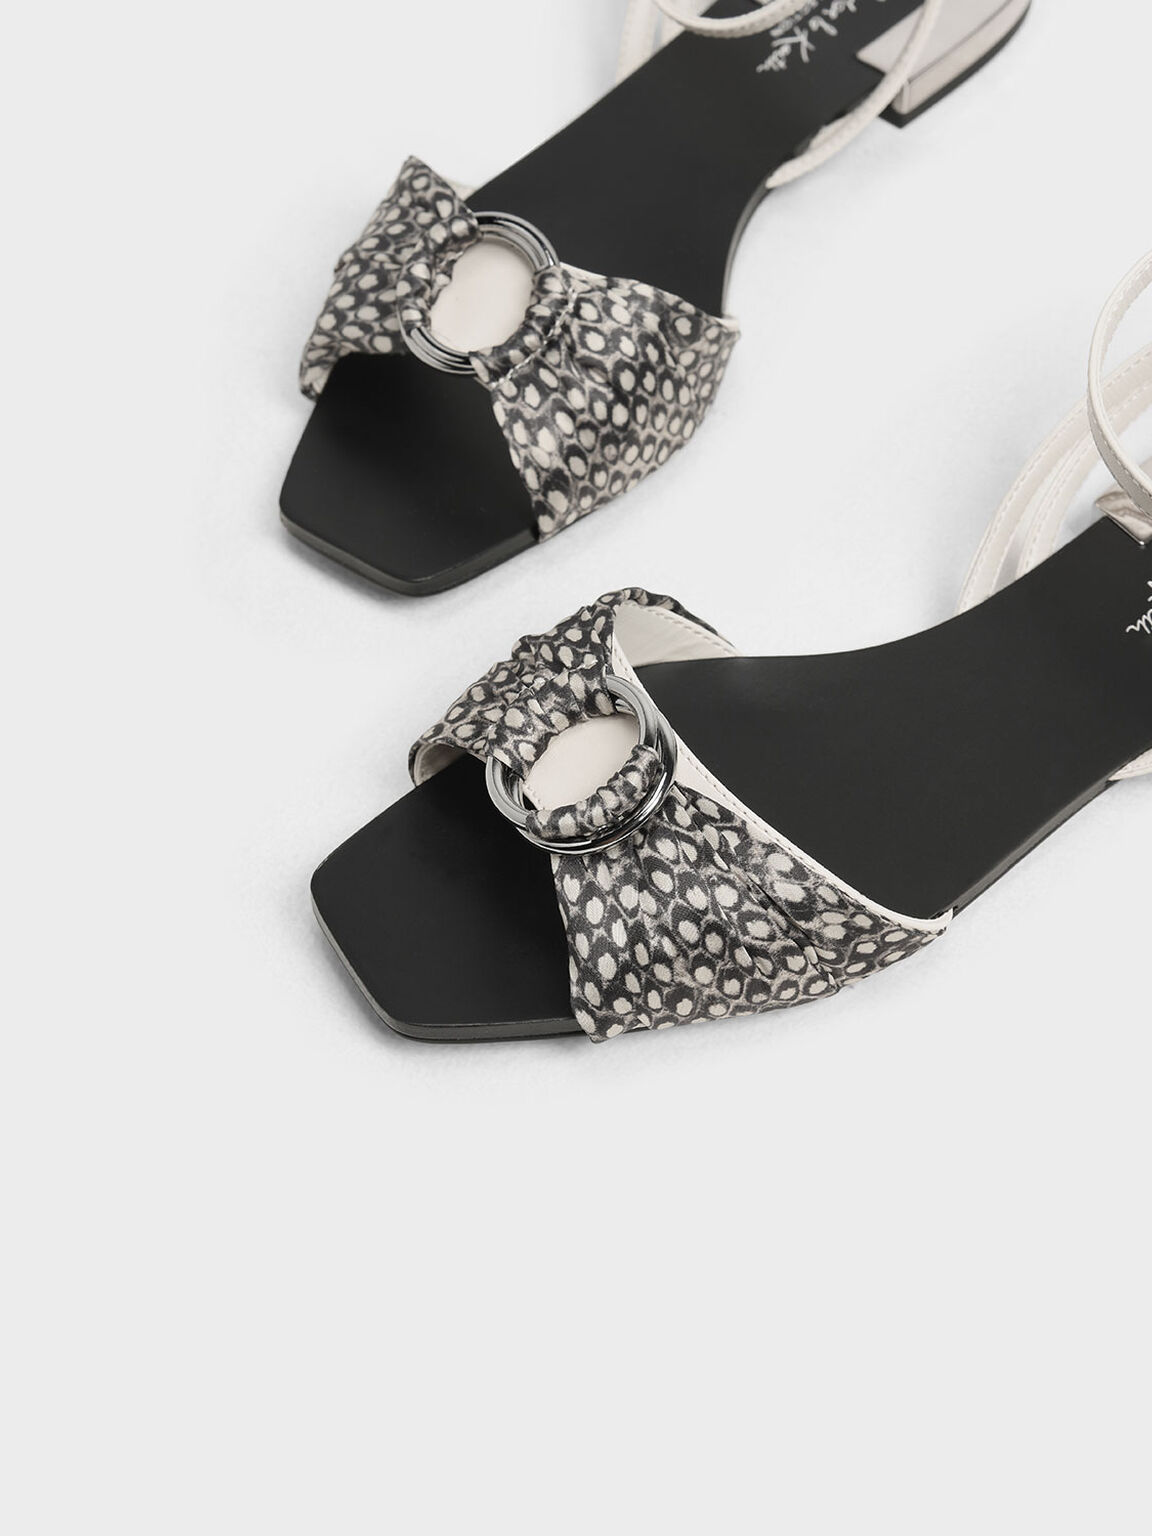 Ring Detail Snake Print Leather Strappy Sandals, Cream, hi-res